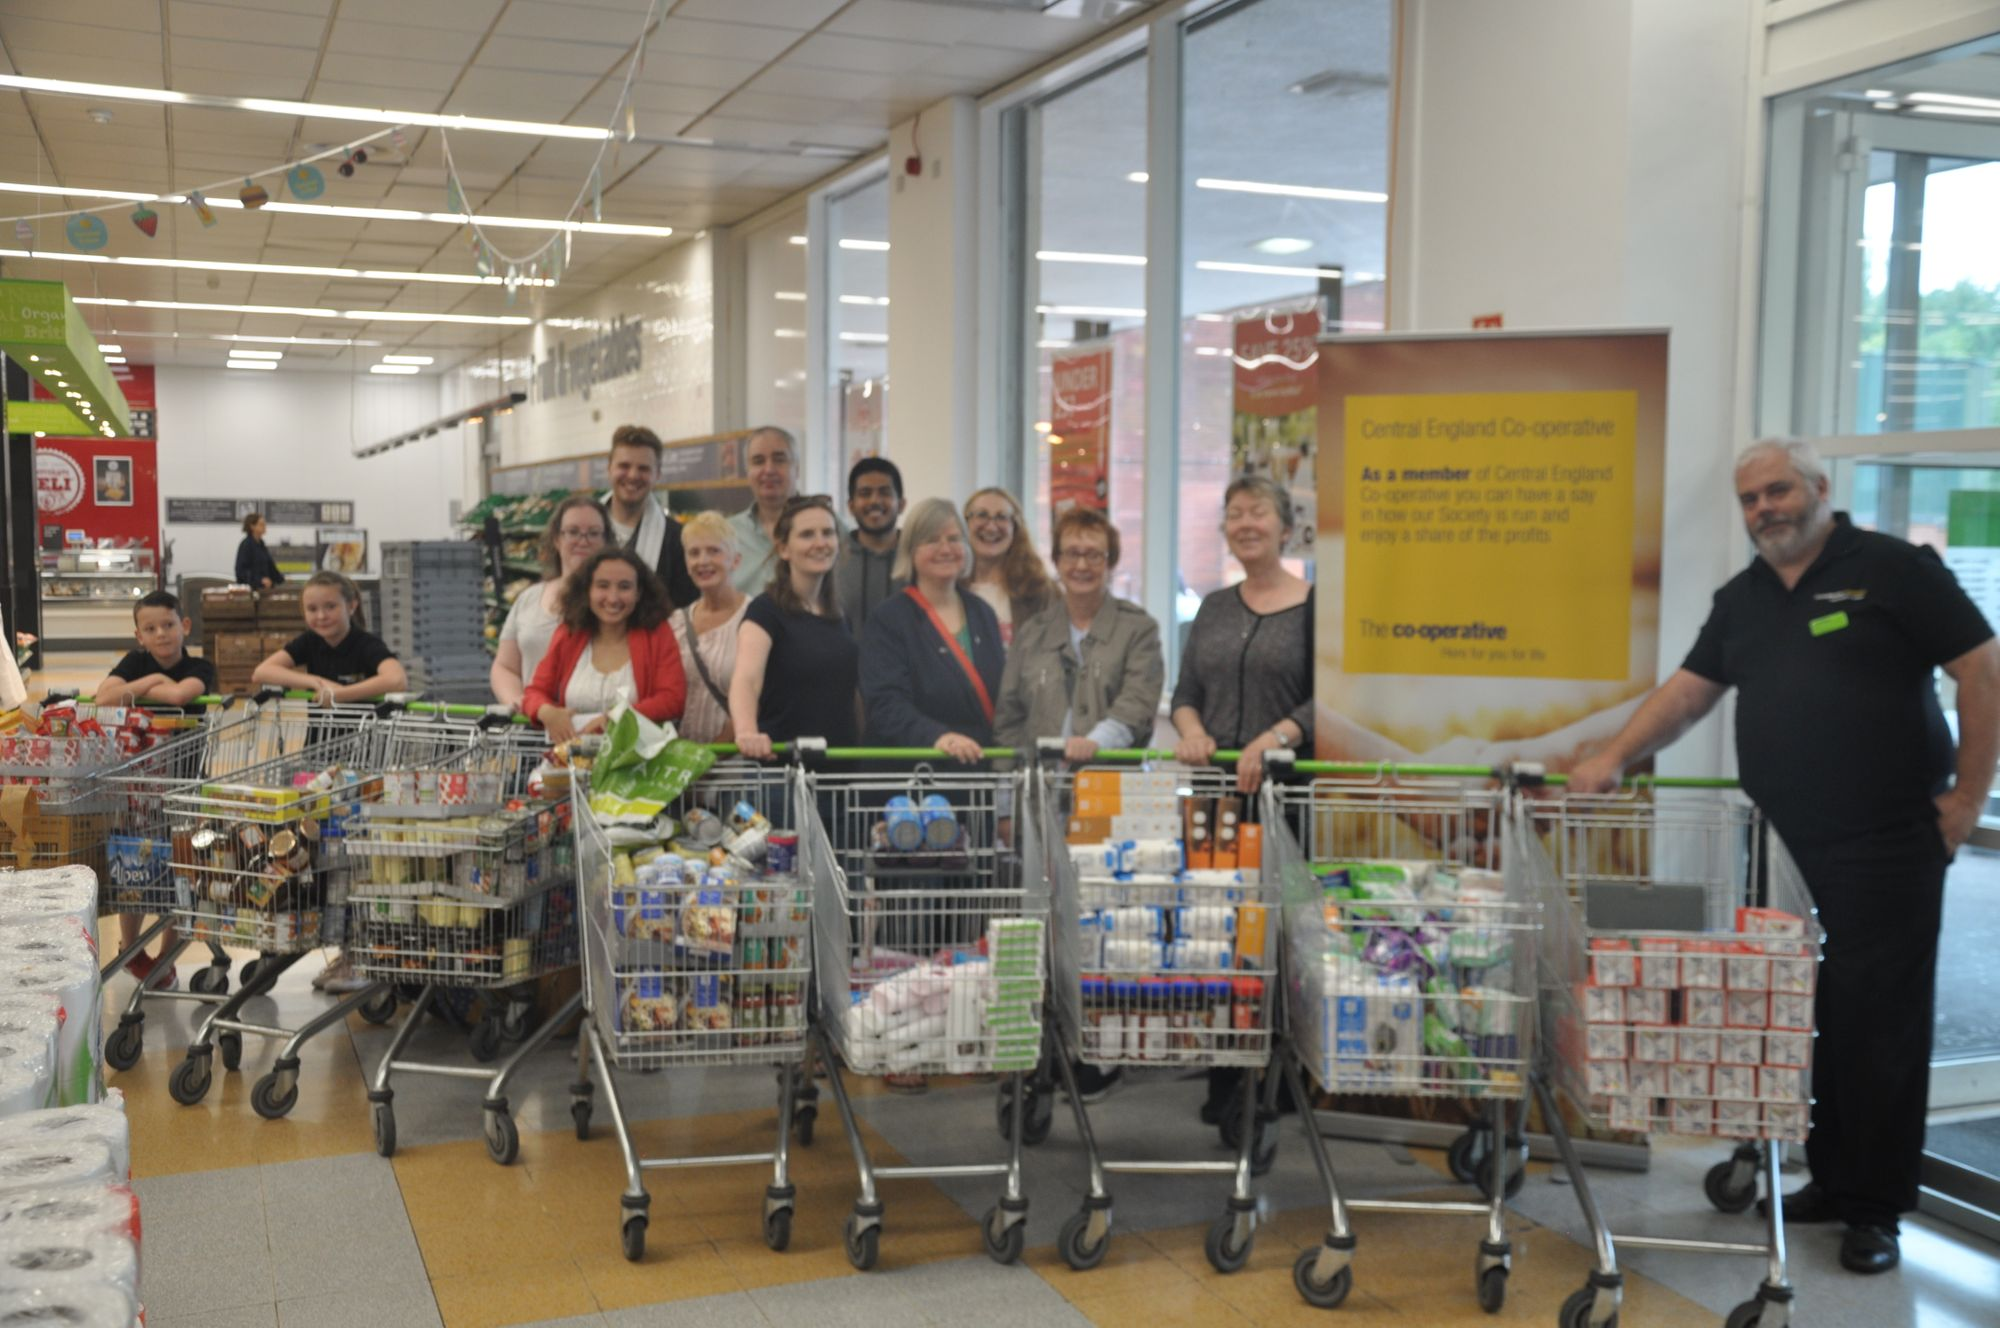 Central England Co-operative support local Food Bank